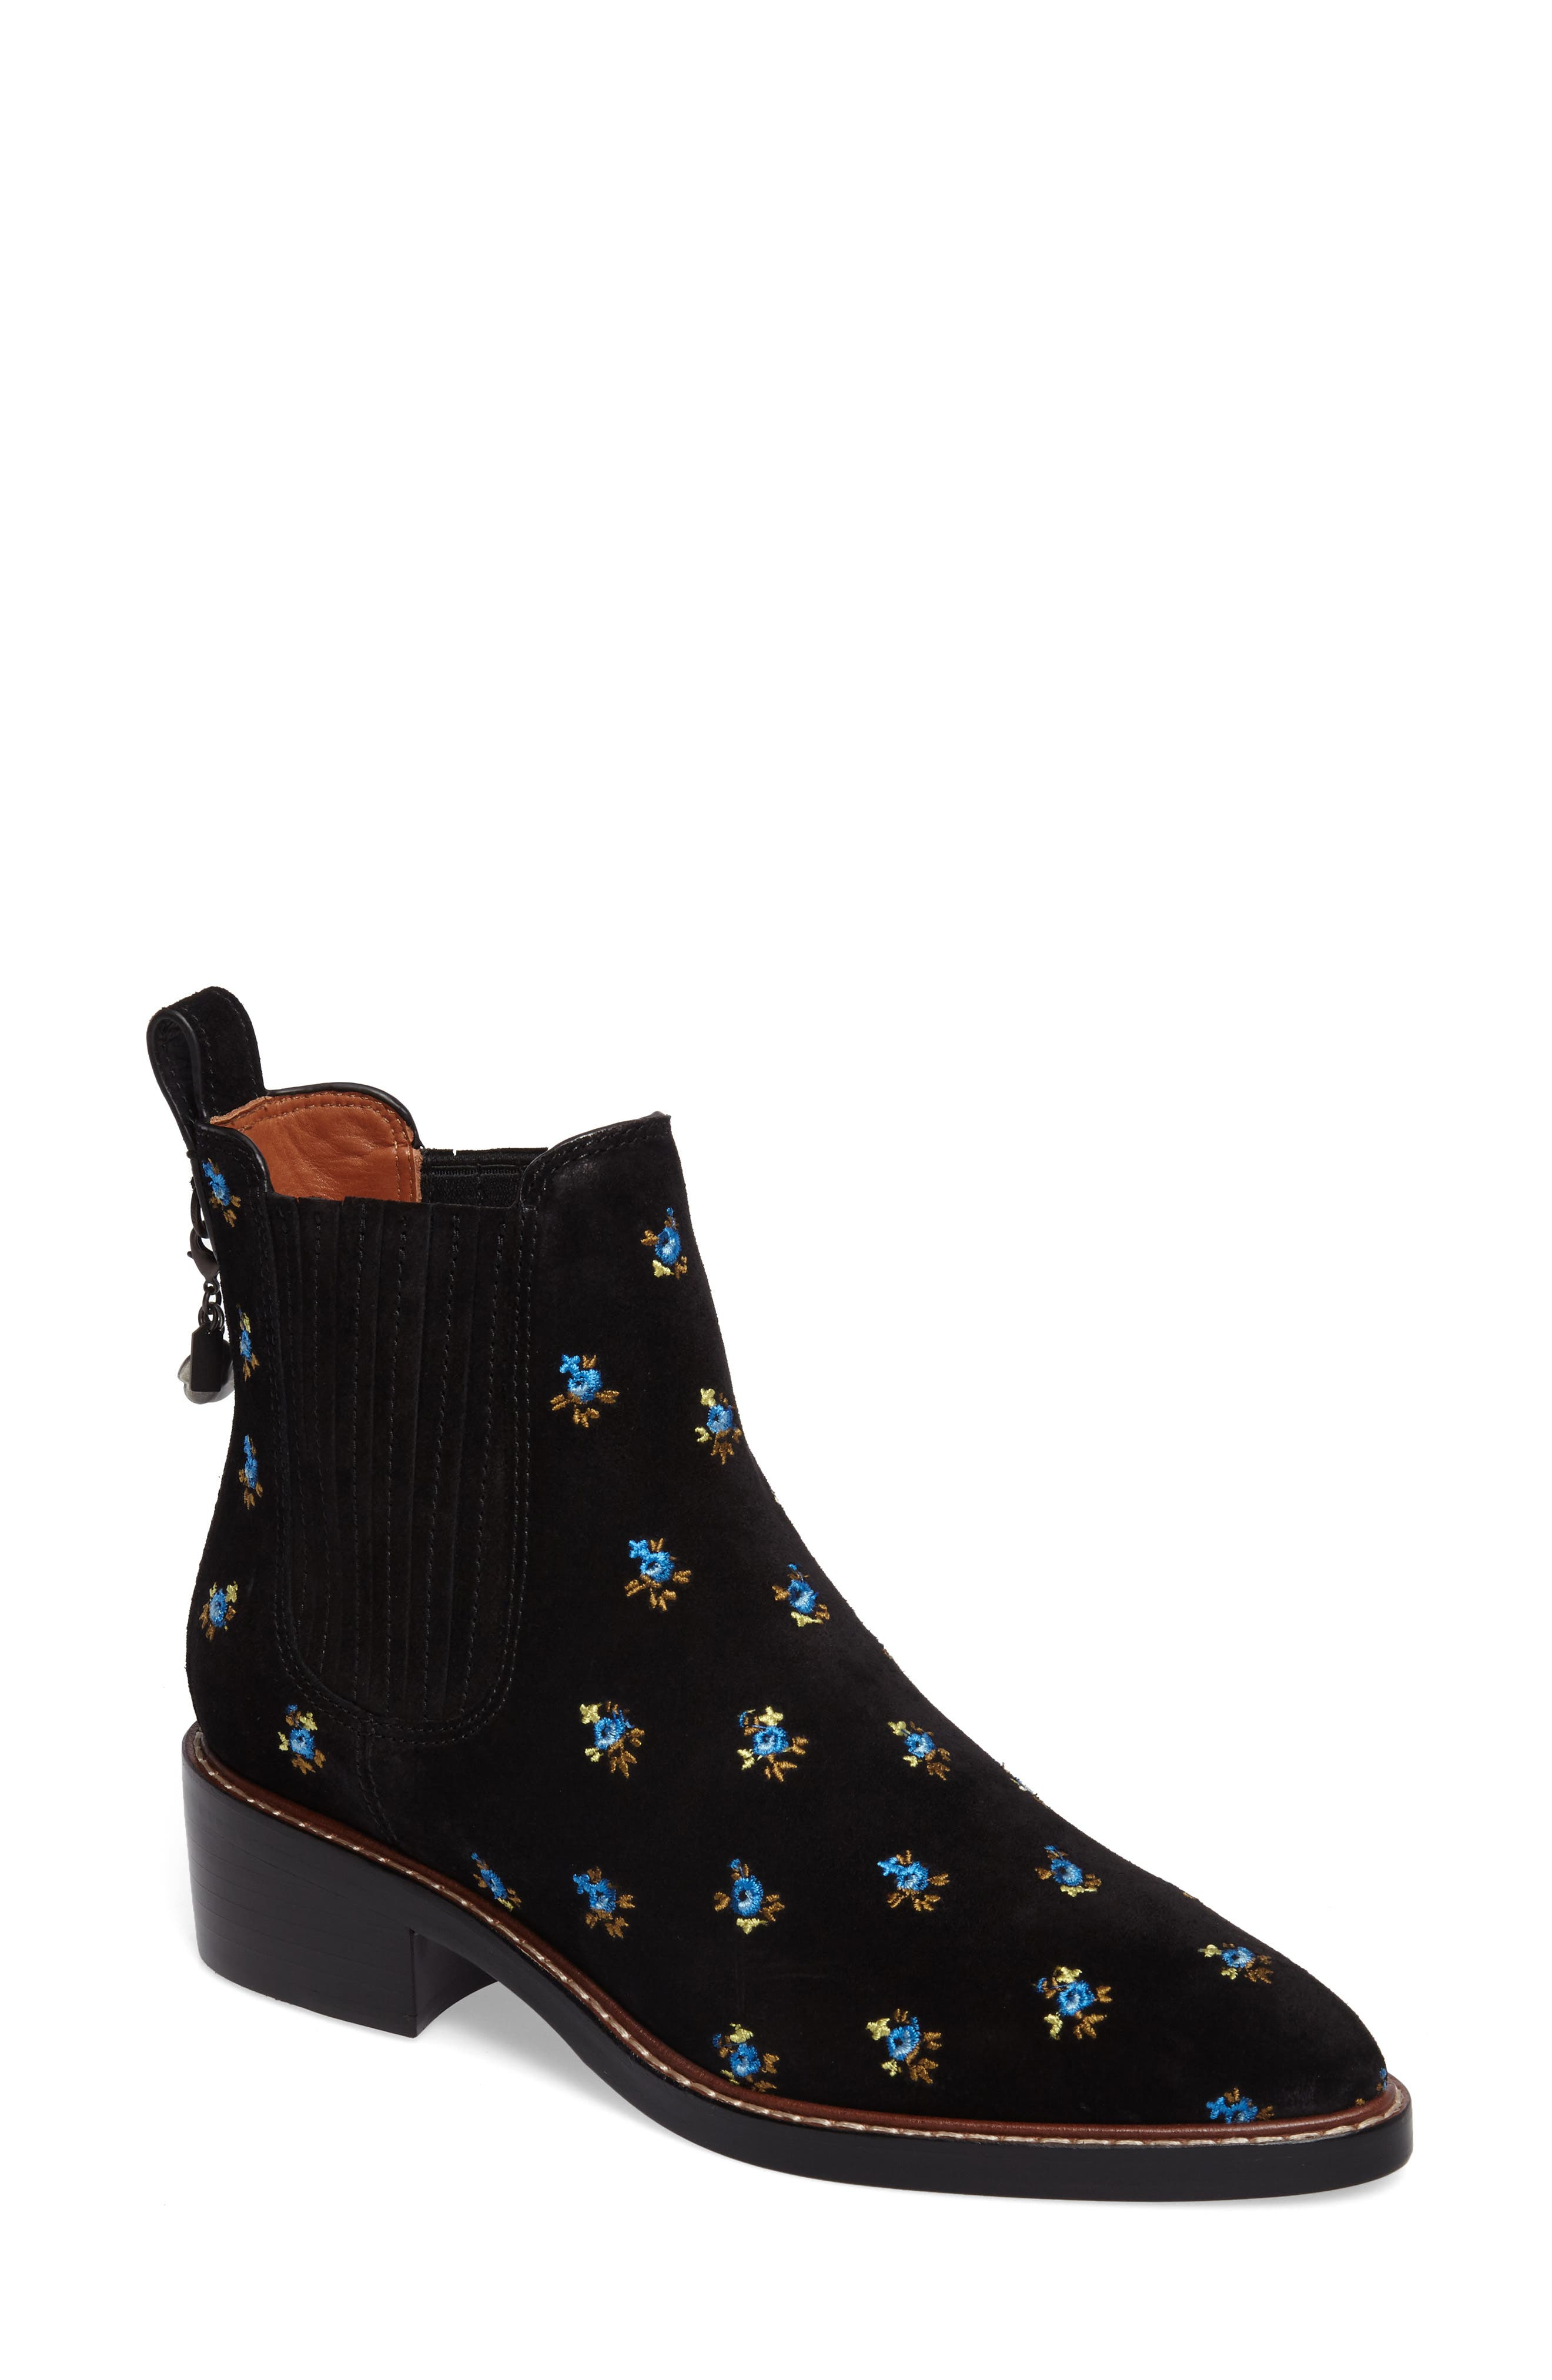 COACH Bowery Embroidered Chelsea Bootie (Women)